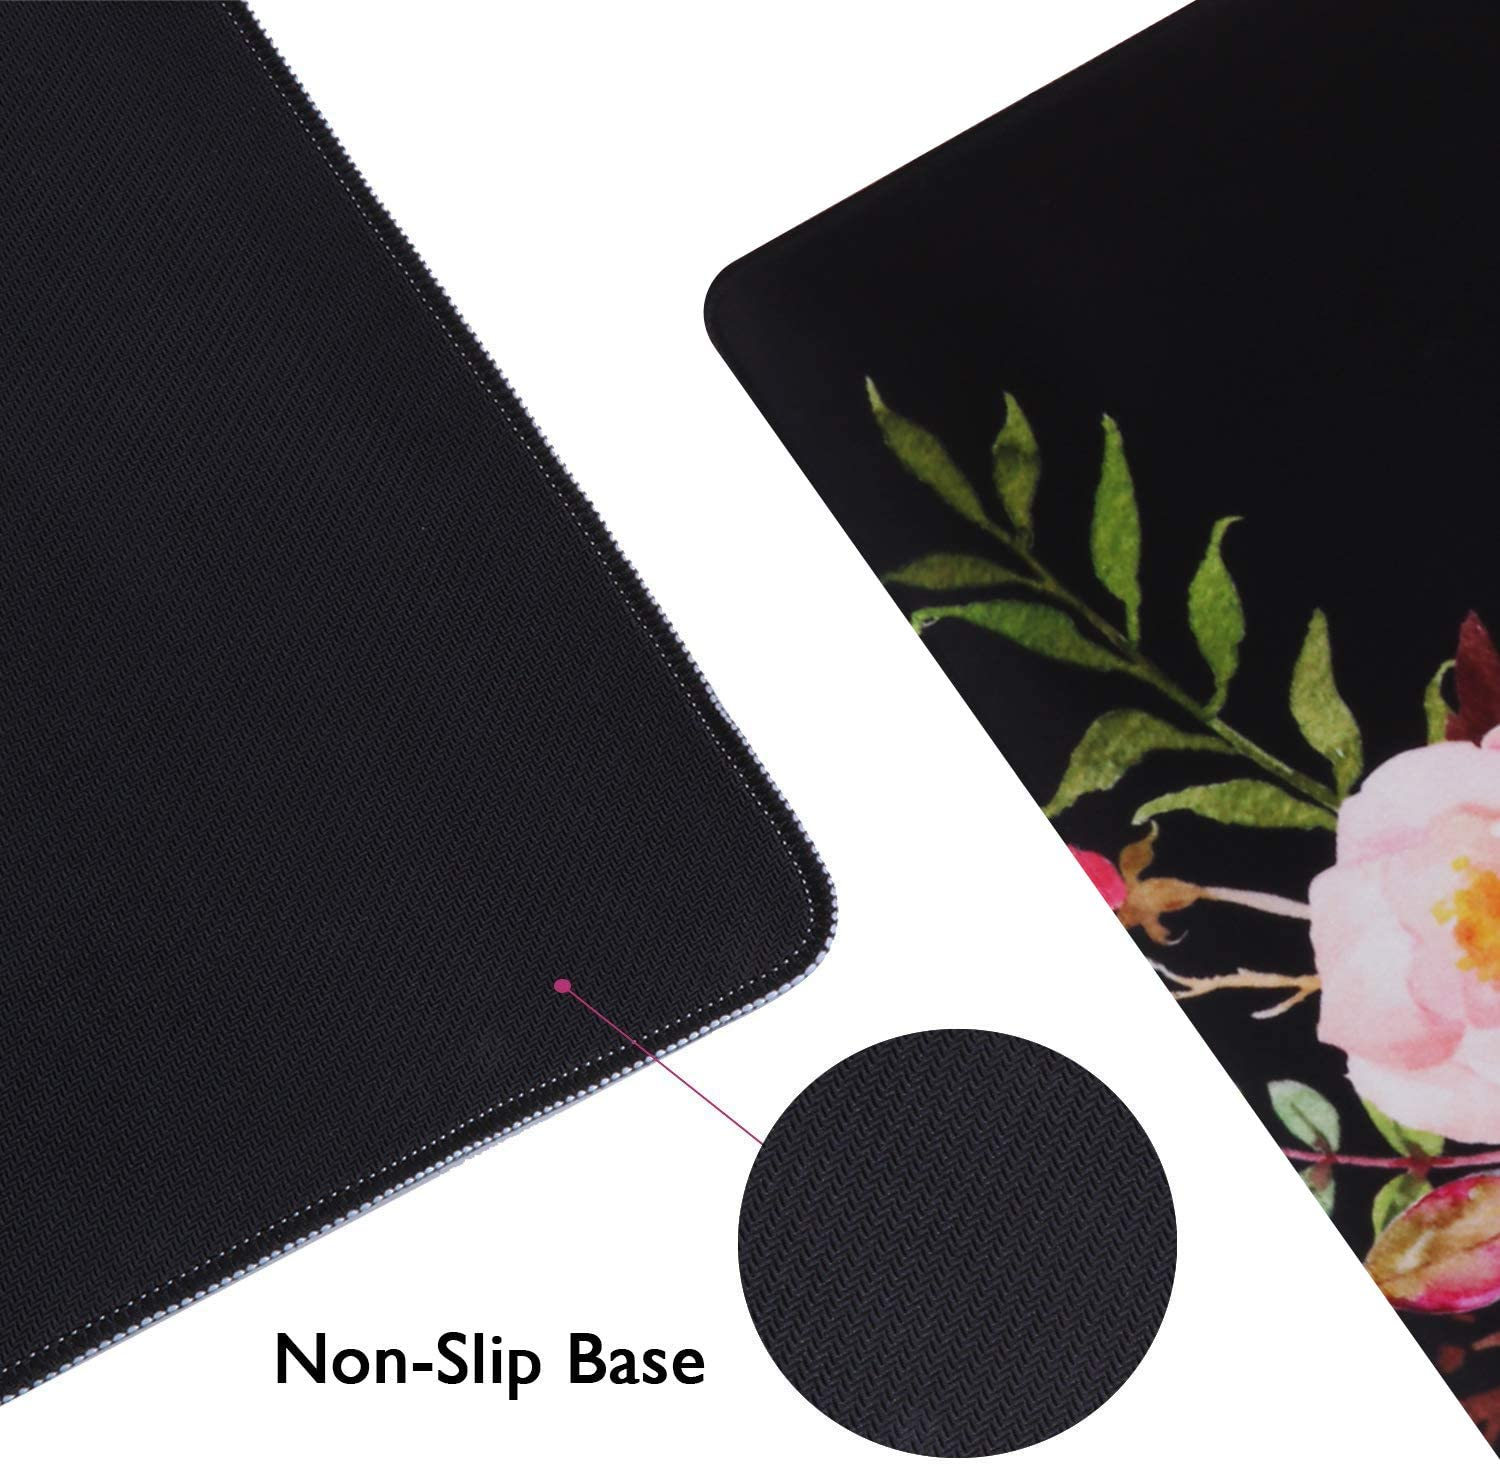 Office Waterproof Keyboard Mouse Mat Desk Pad for Work Pink Marble 35.4x15.7 in Home Game Large Non-Slip Rubber Base Mousepad with Stitched Edges iCasso Extended Gaming Mouse Pad